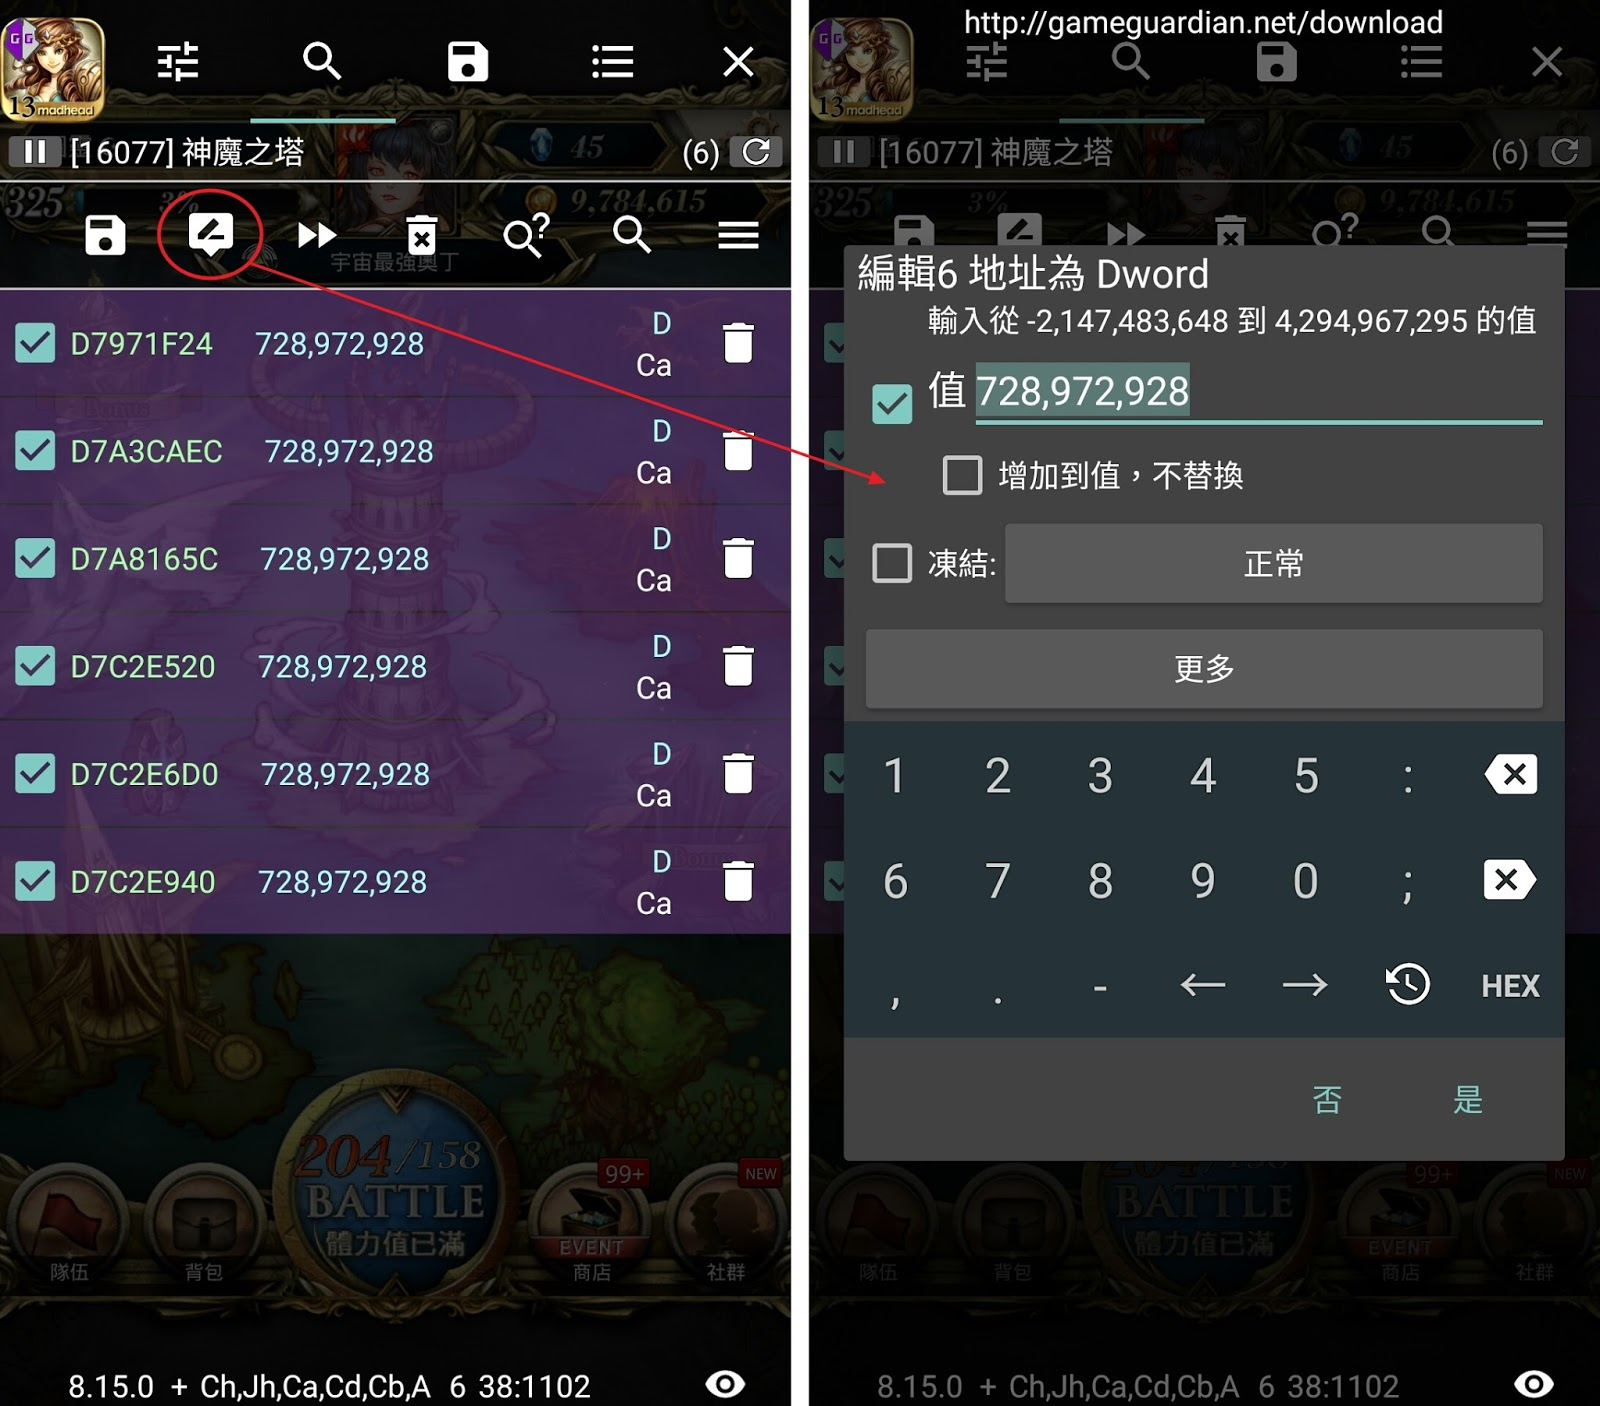 Screenshot 20170505 181347 - GG修改器《GameGuardian》最新手遊作弊修改器,還可當加速器、支援安卓6.0以上